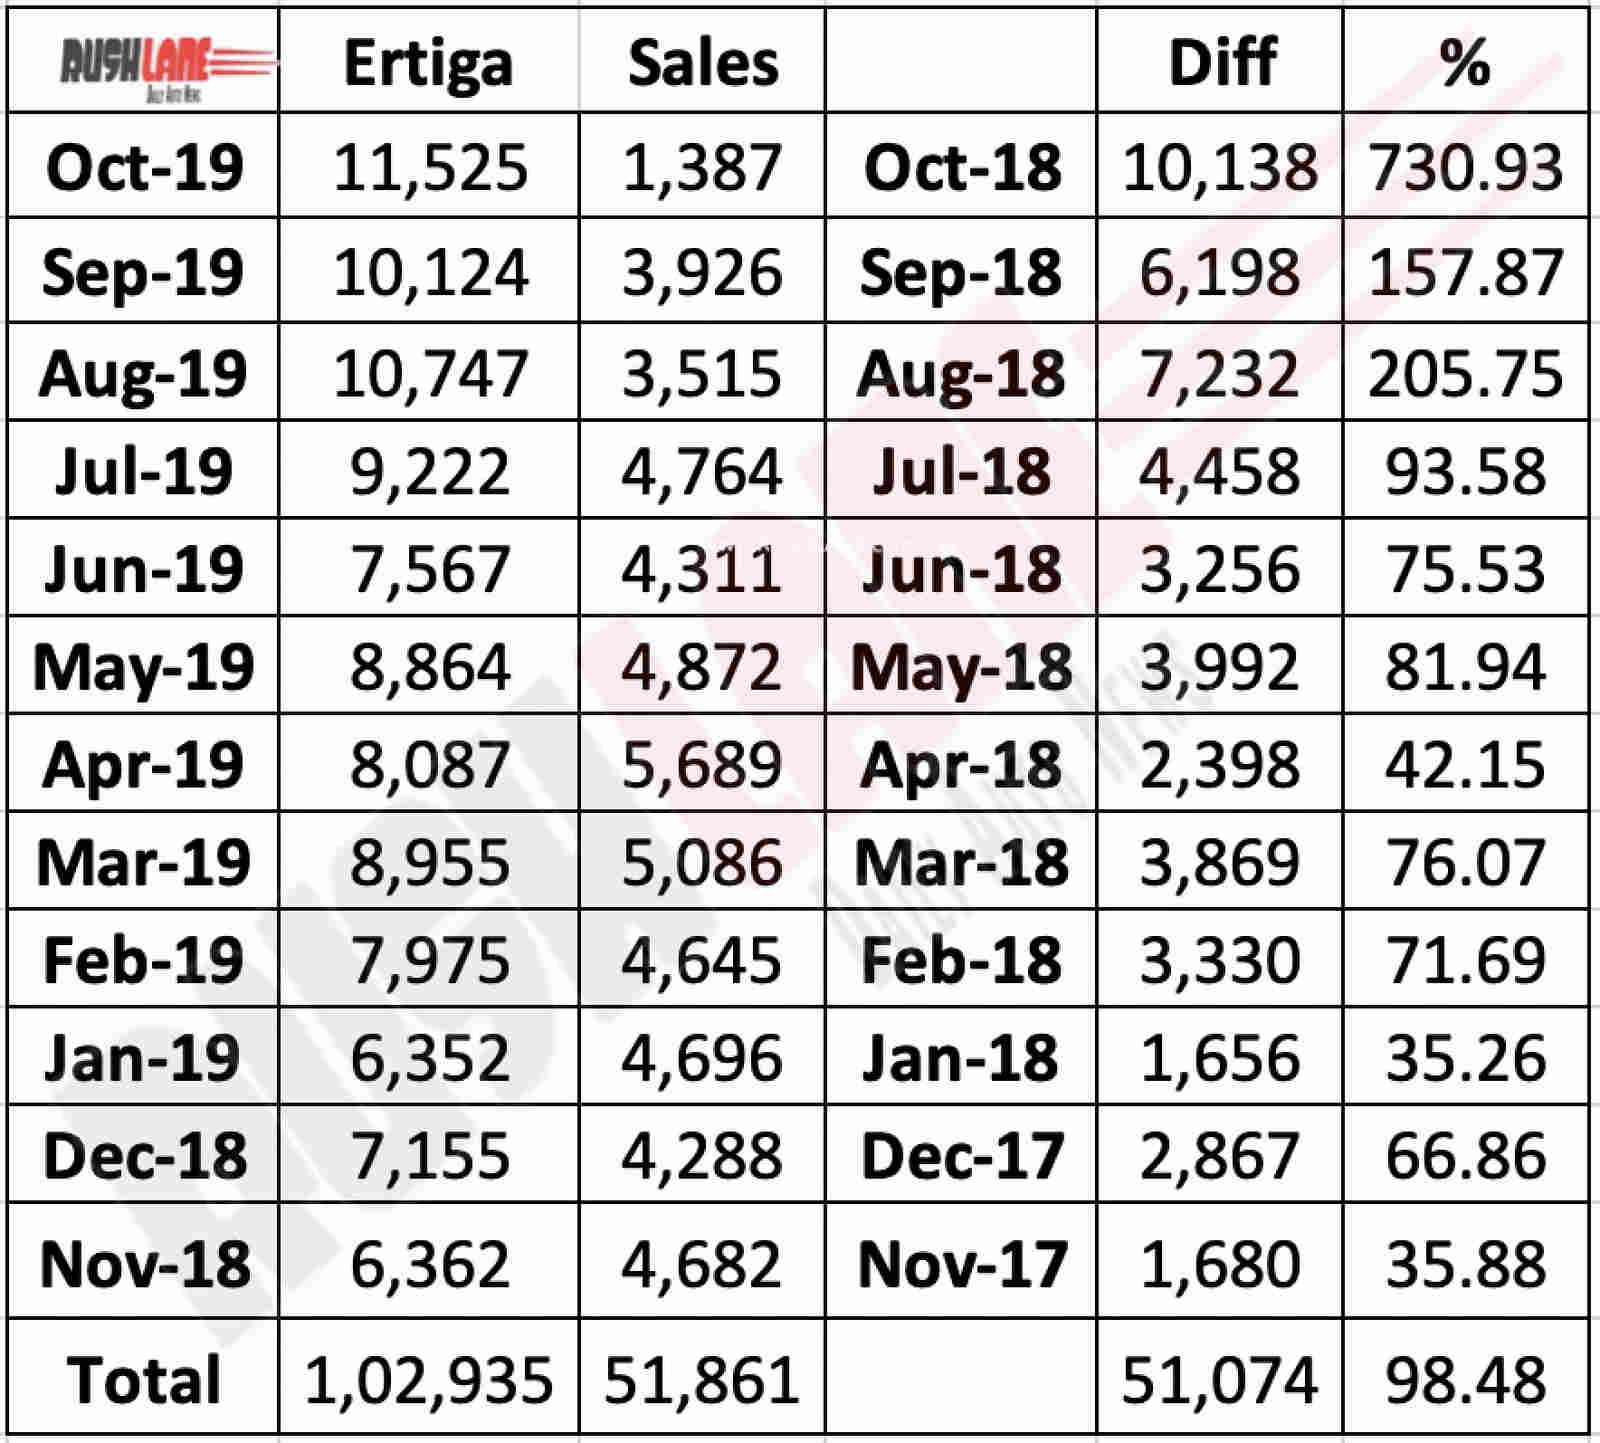 Maruti Ertiga sales performance last 1 year